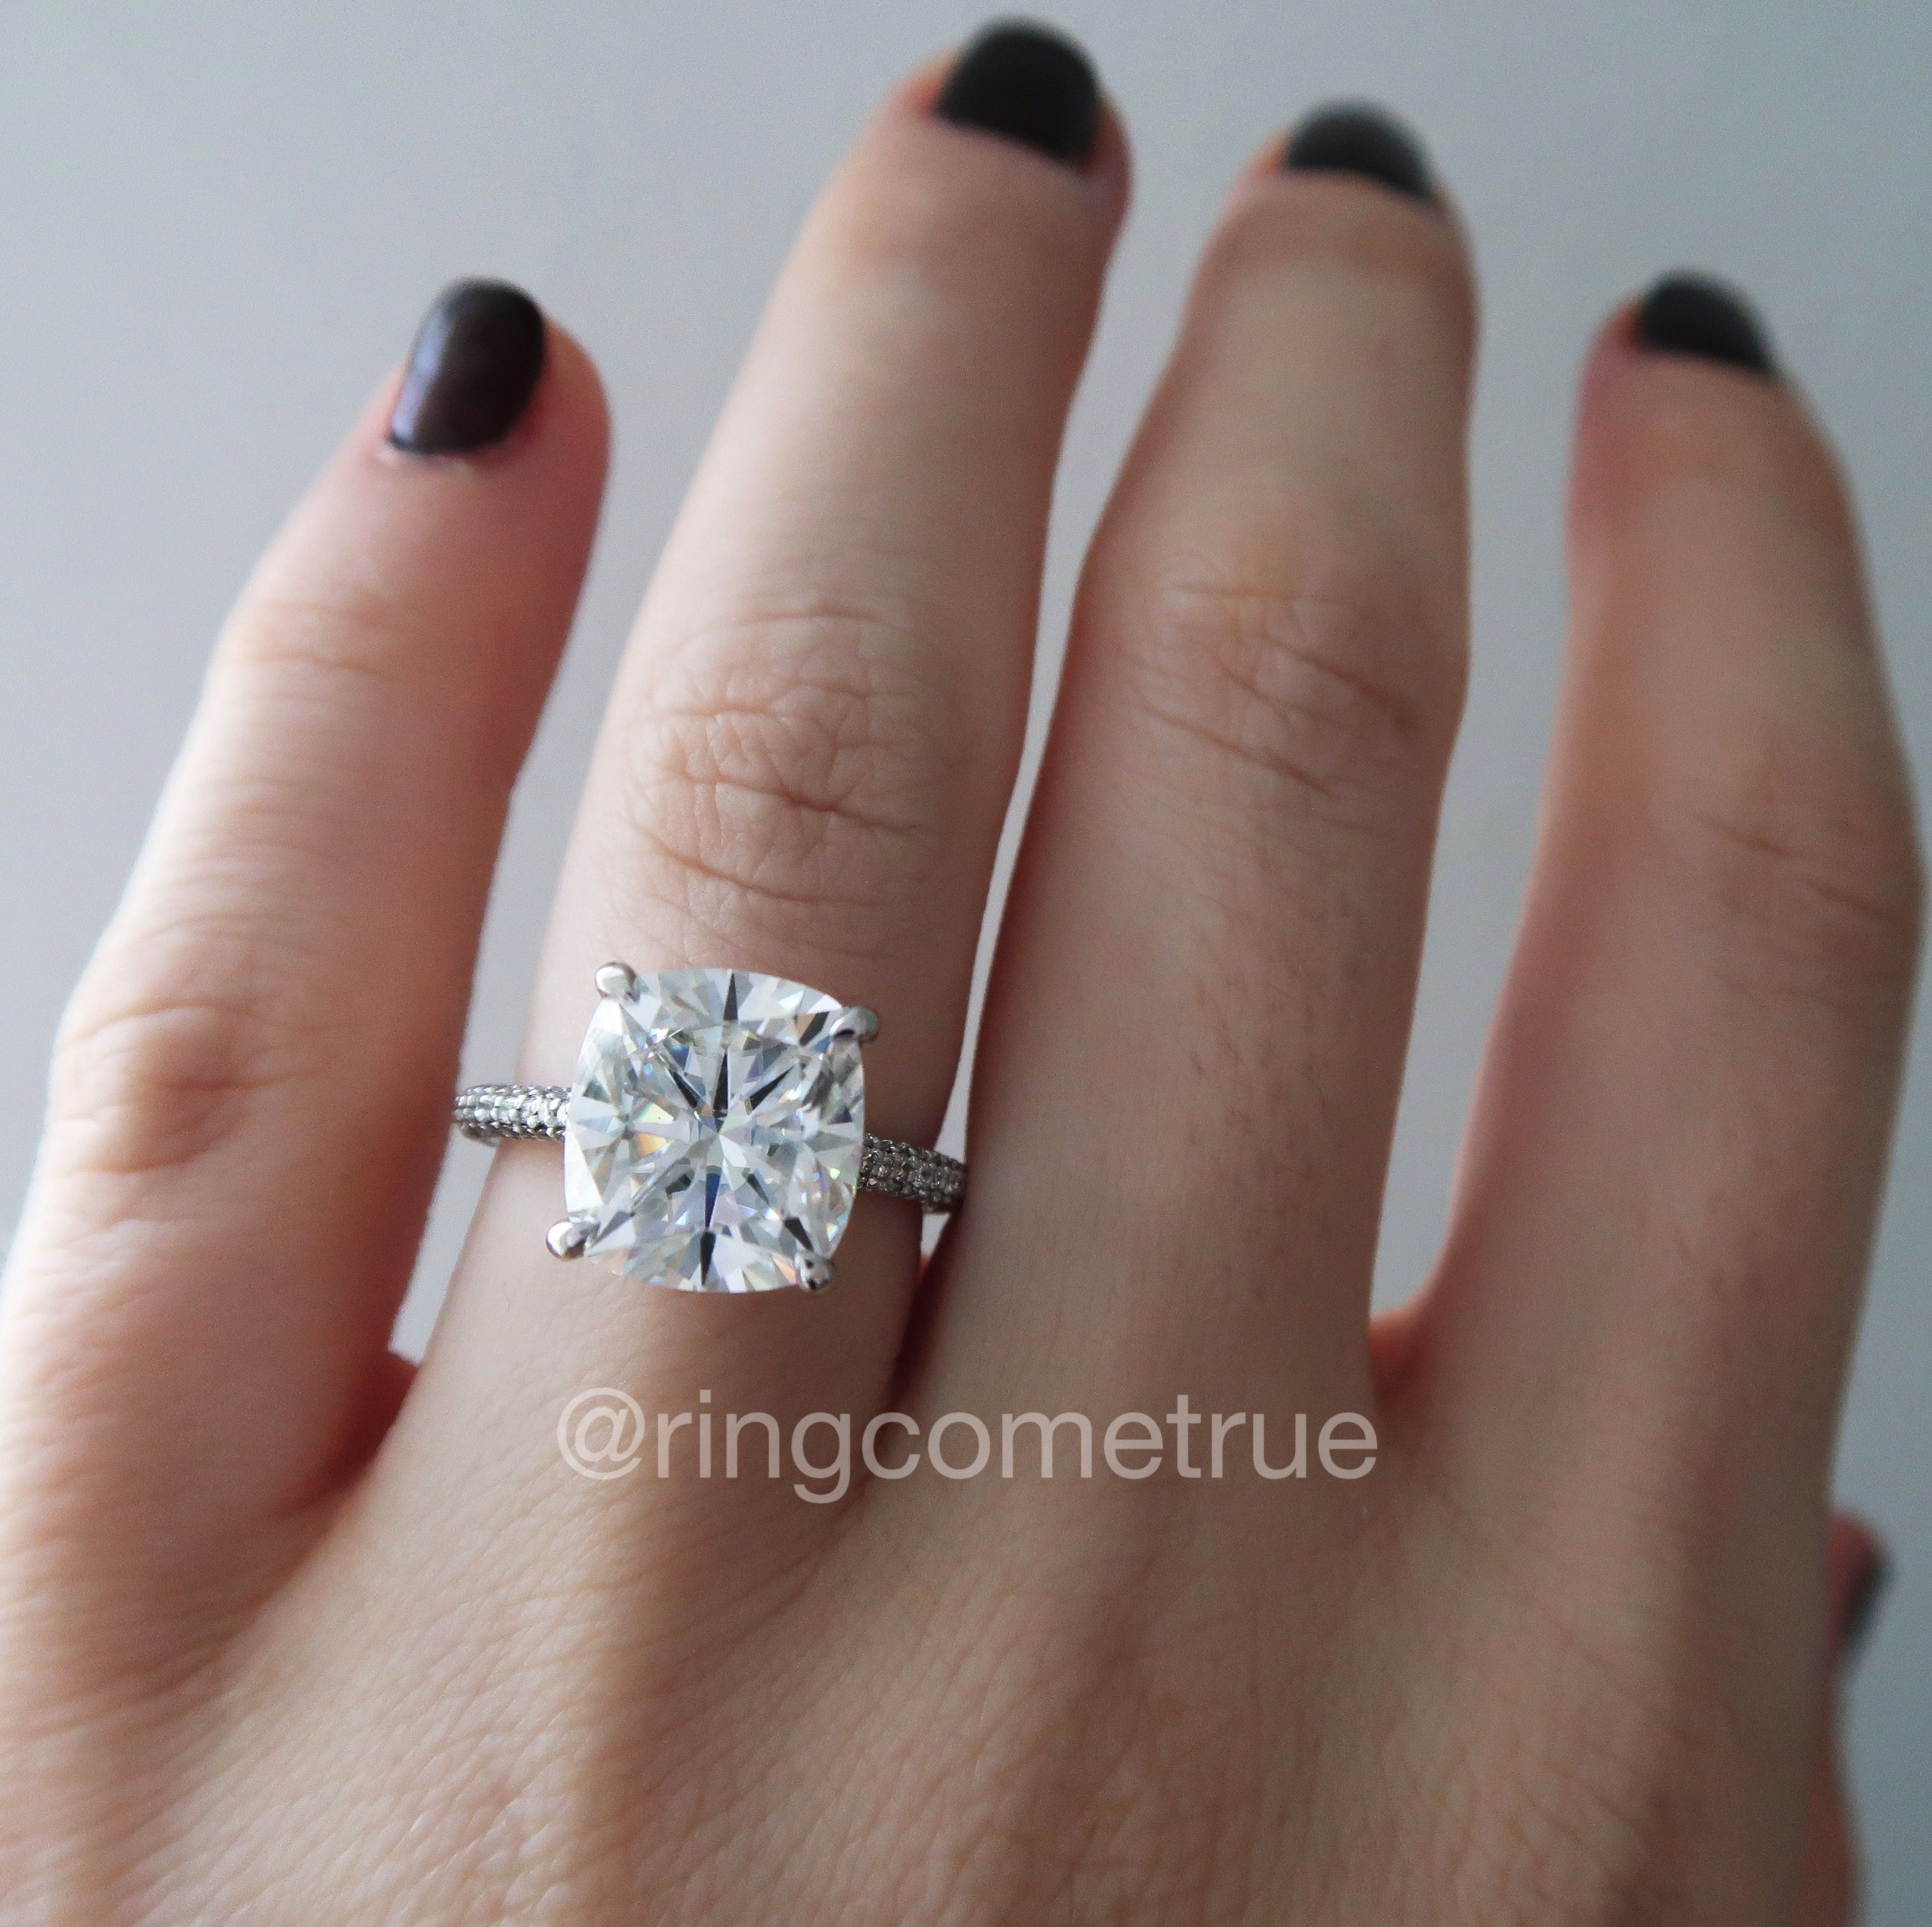 Elongated Cushion Moissanite Engagement Ring Beautiful Engagement Rings Elegant Engagement Rings Dream Engagement Rings